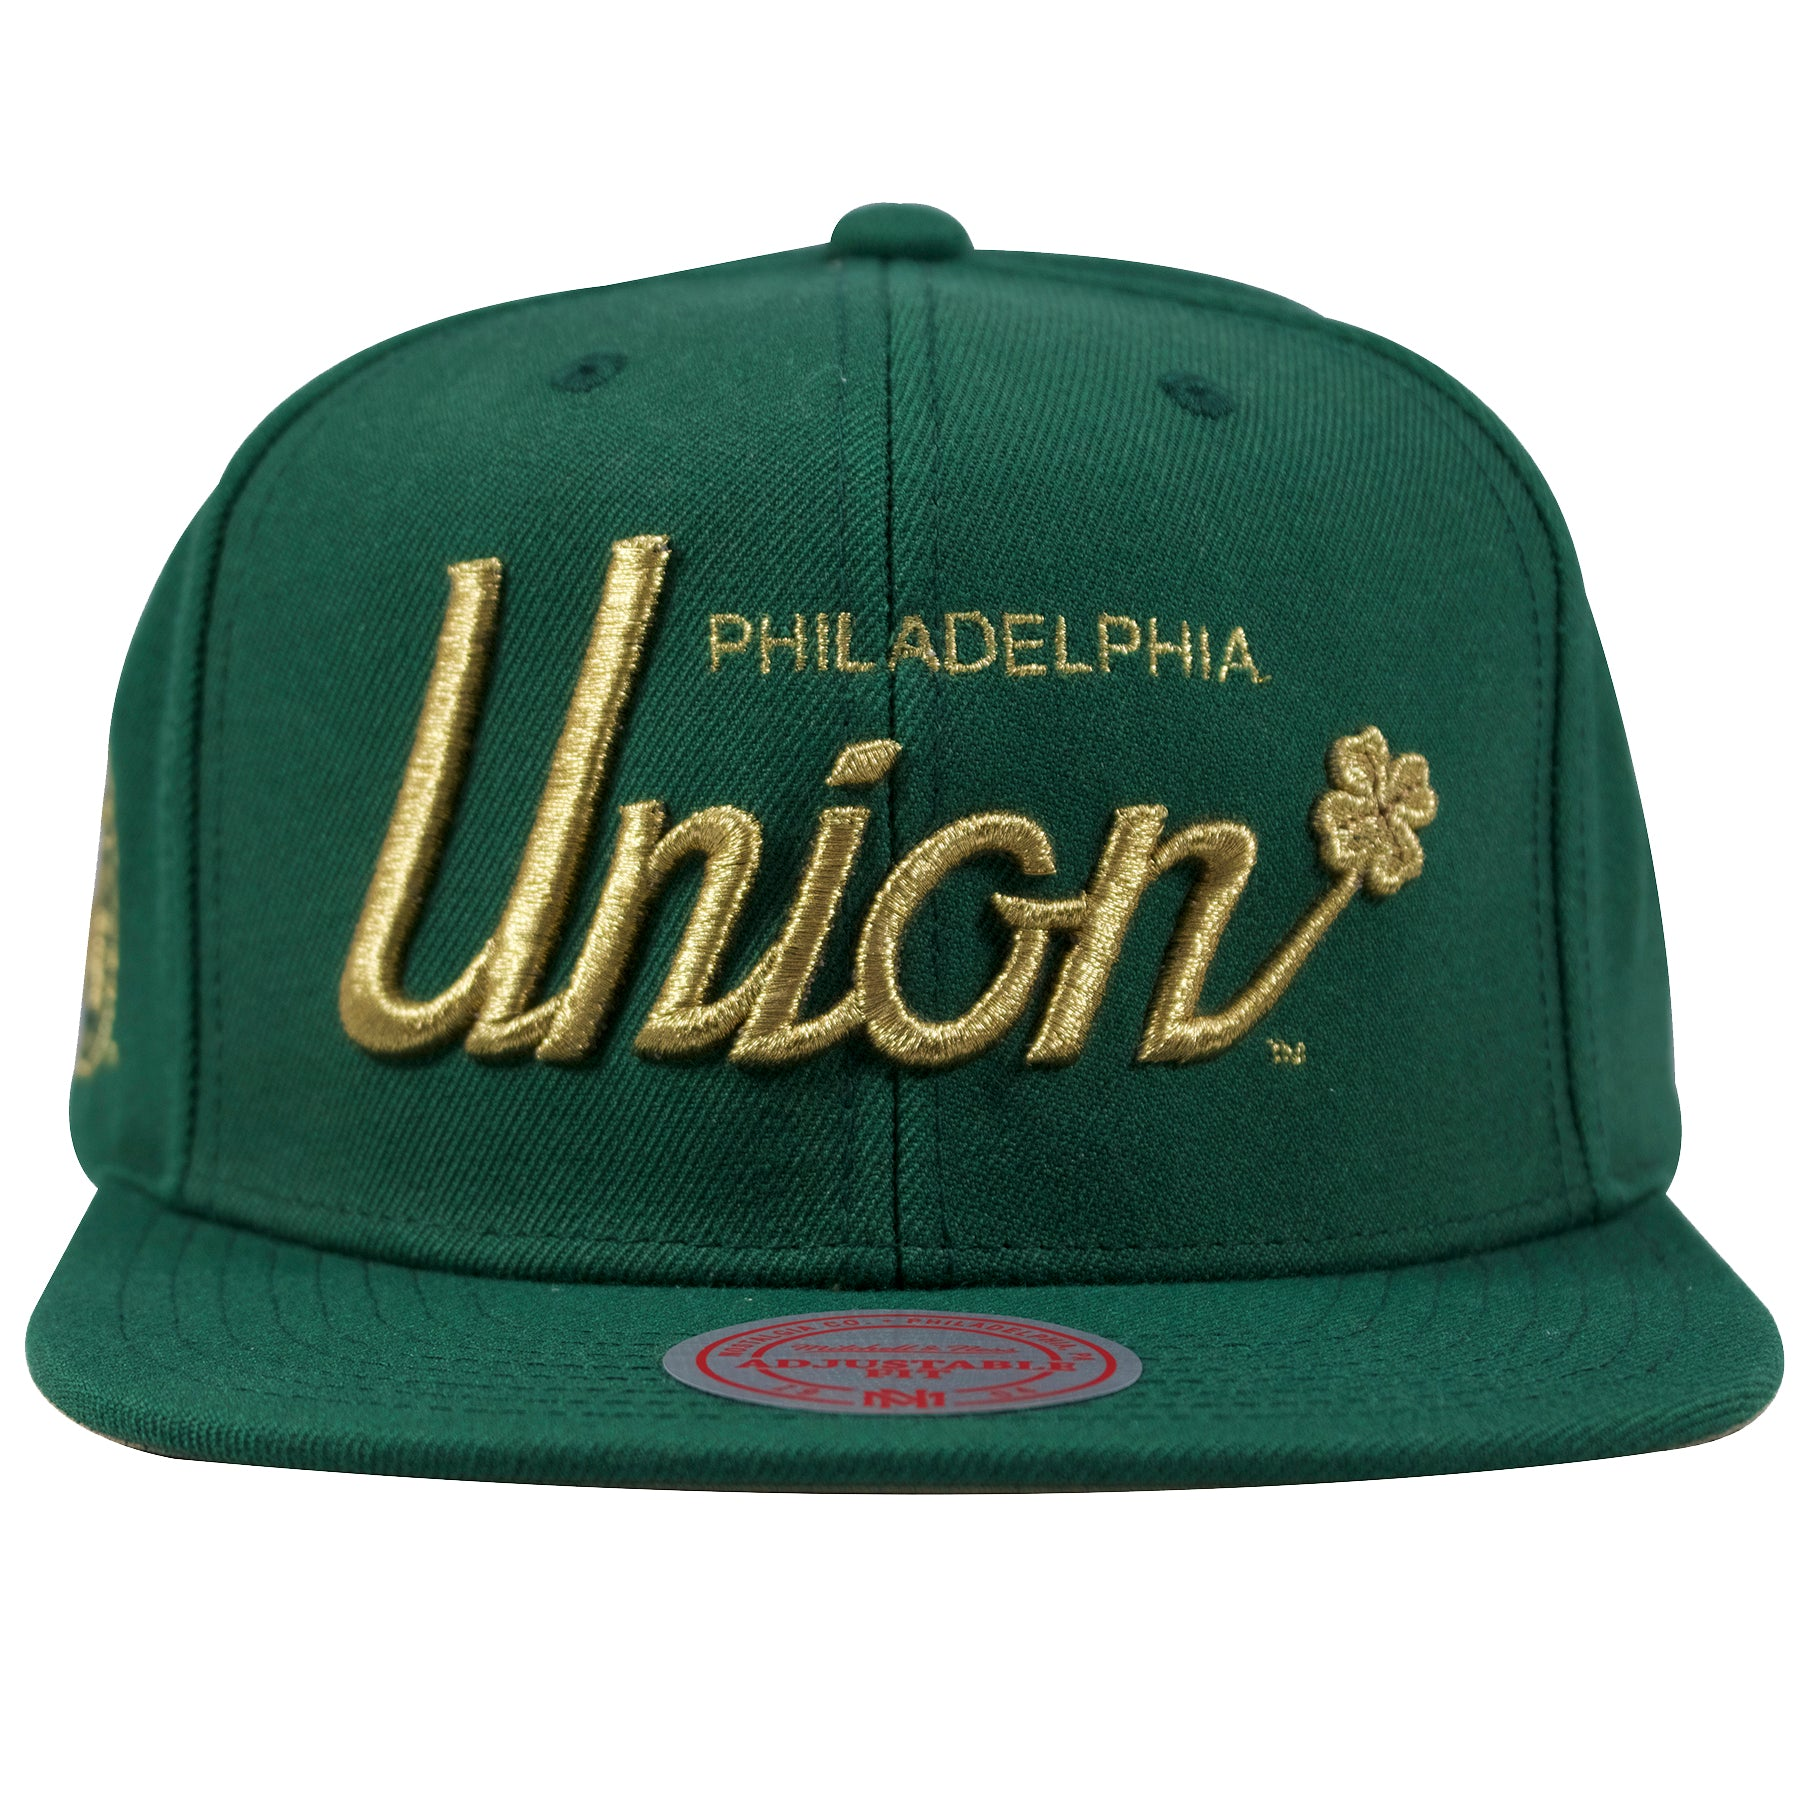 afe3183c91f on the front of the Philadelphia union four leaf clover green and gold  snapback hat is